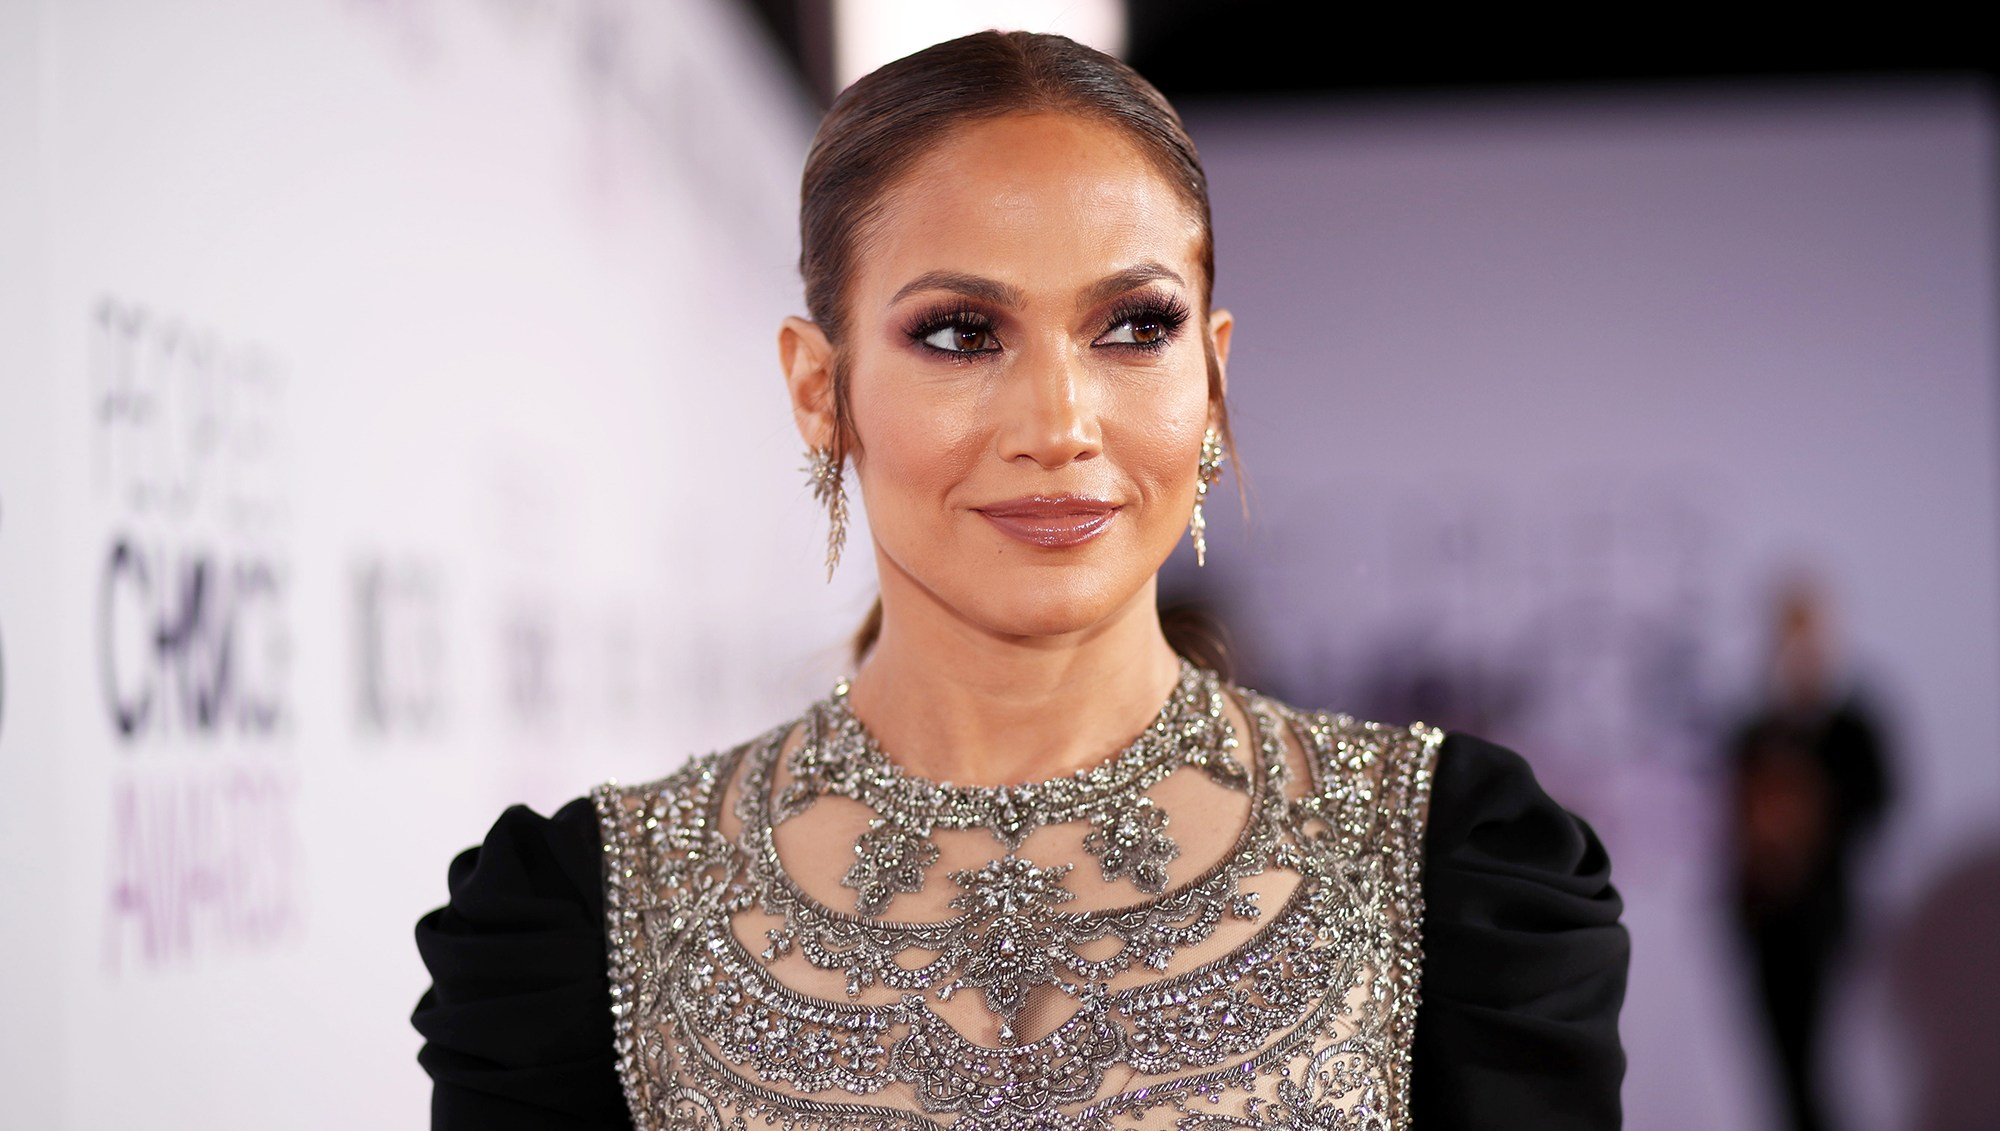 How Jennifer Lopez Makes Smart Choices With Fresh, Clean Eating